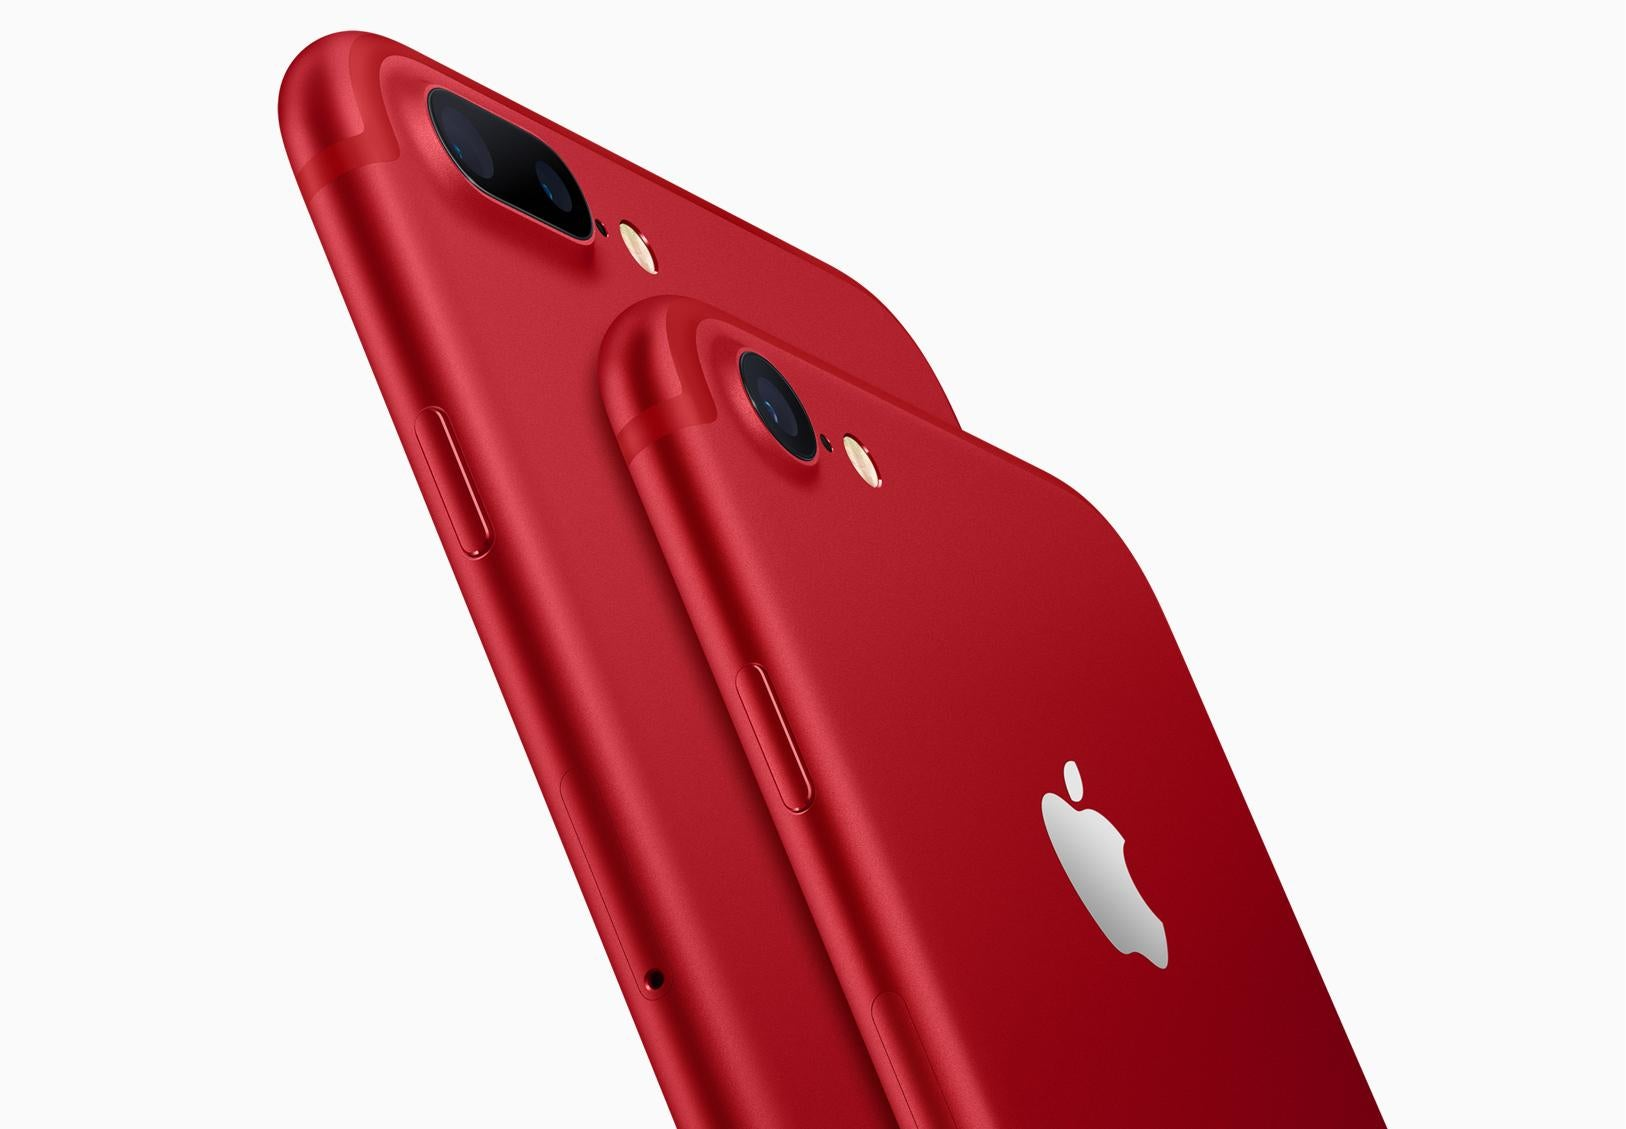 Apple Releases IPhone 7 In New Red Colour Alongside Update IPad Pro And Apps